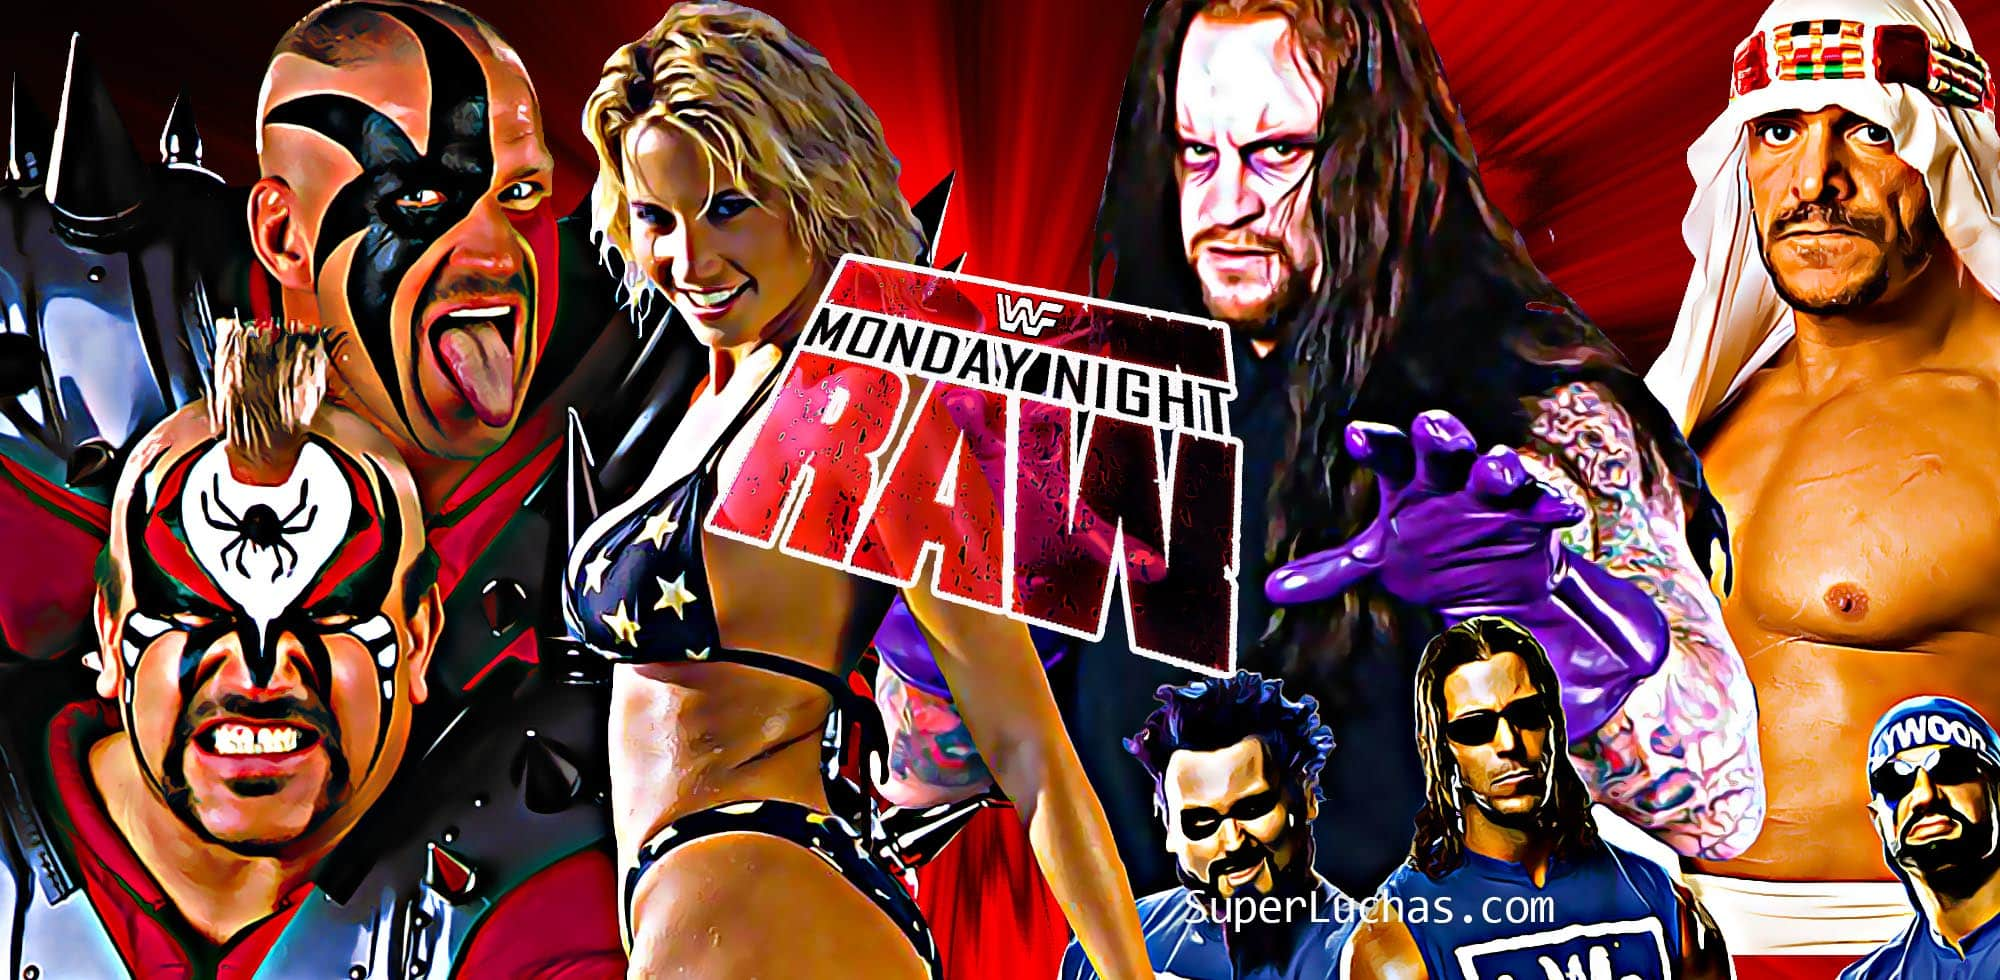 Monday Night Raw Clásico (24-feb-97) — ¡Raw se vuelve extremo! 1